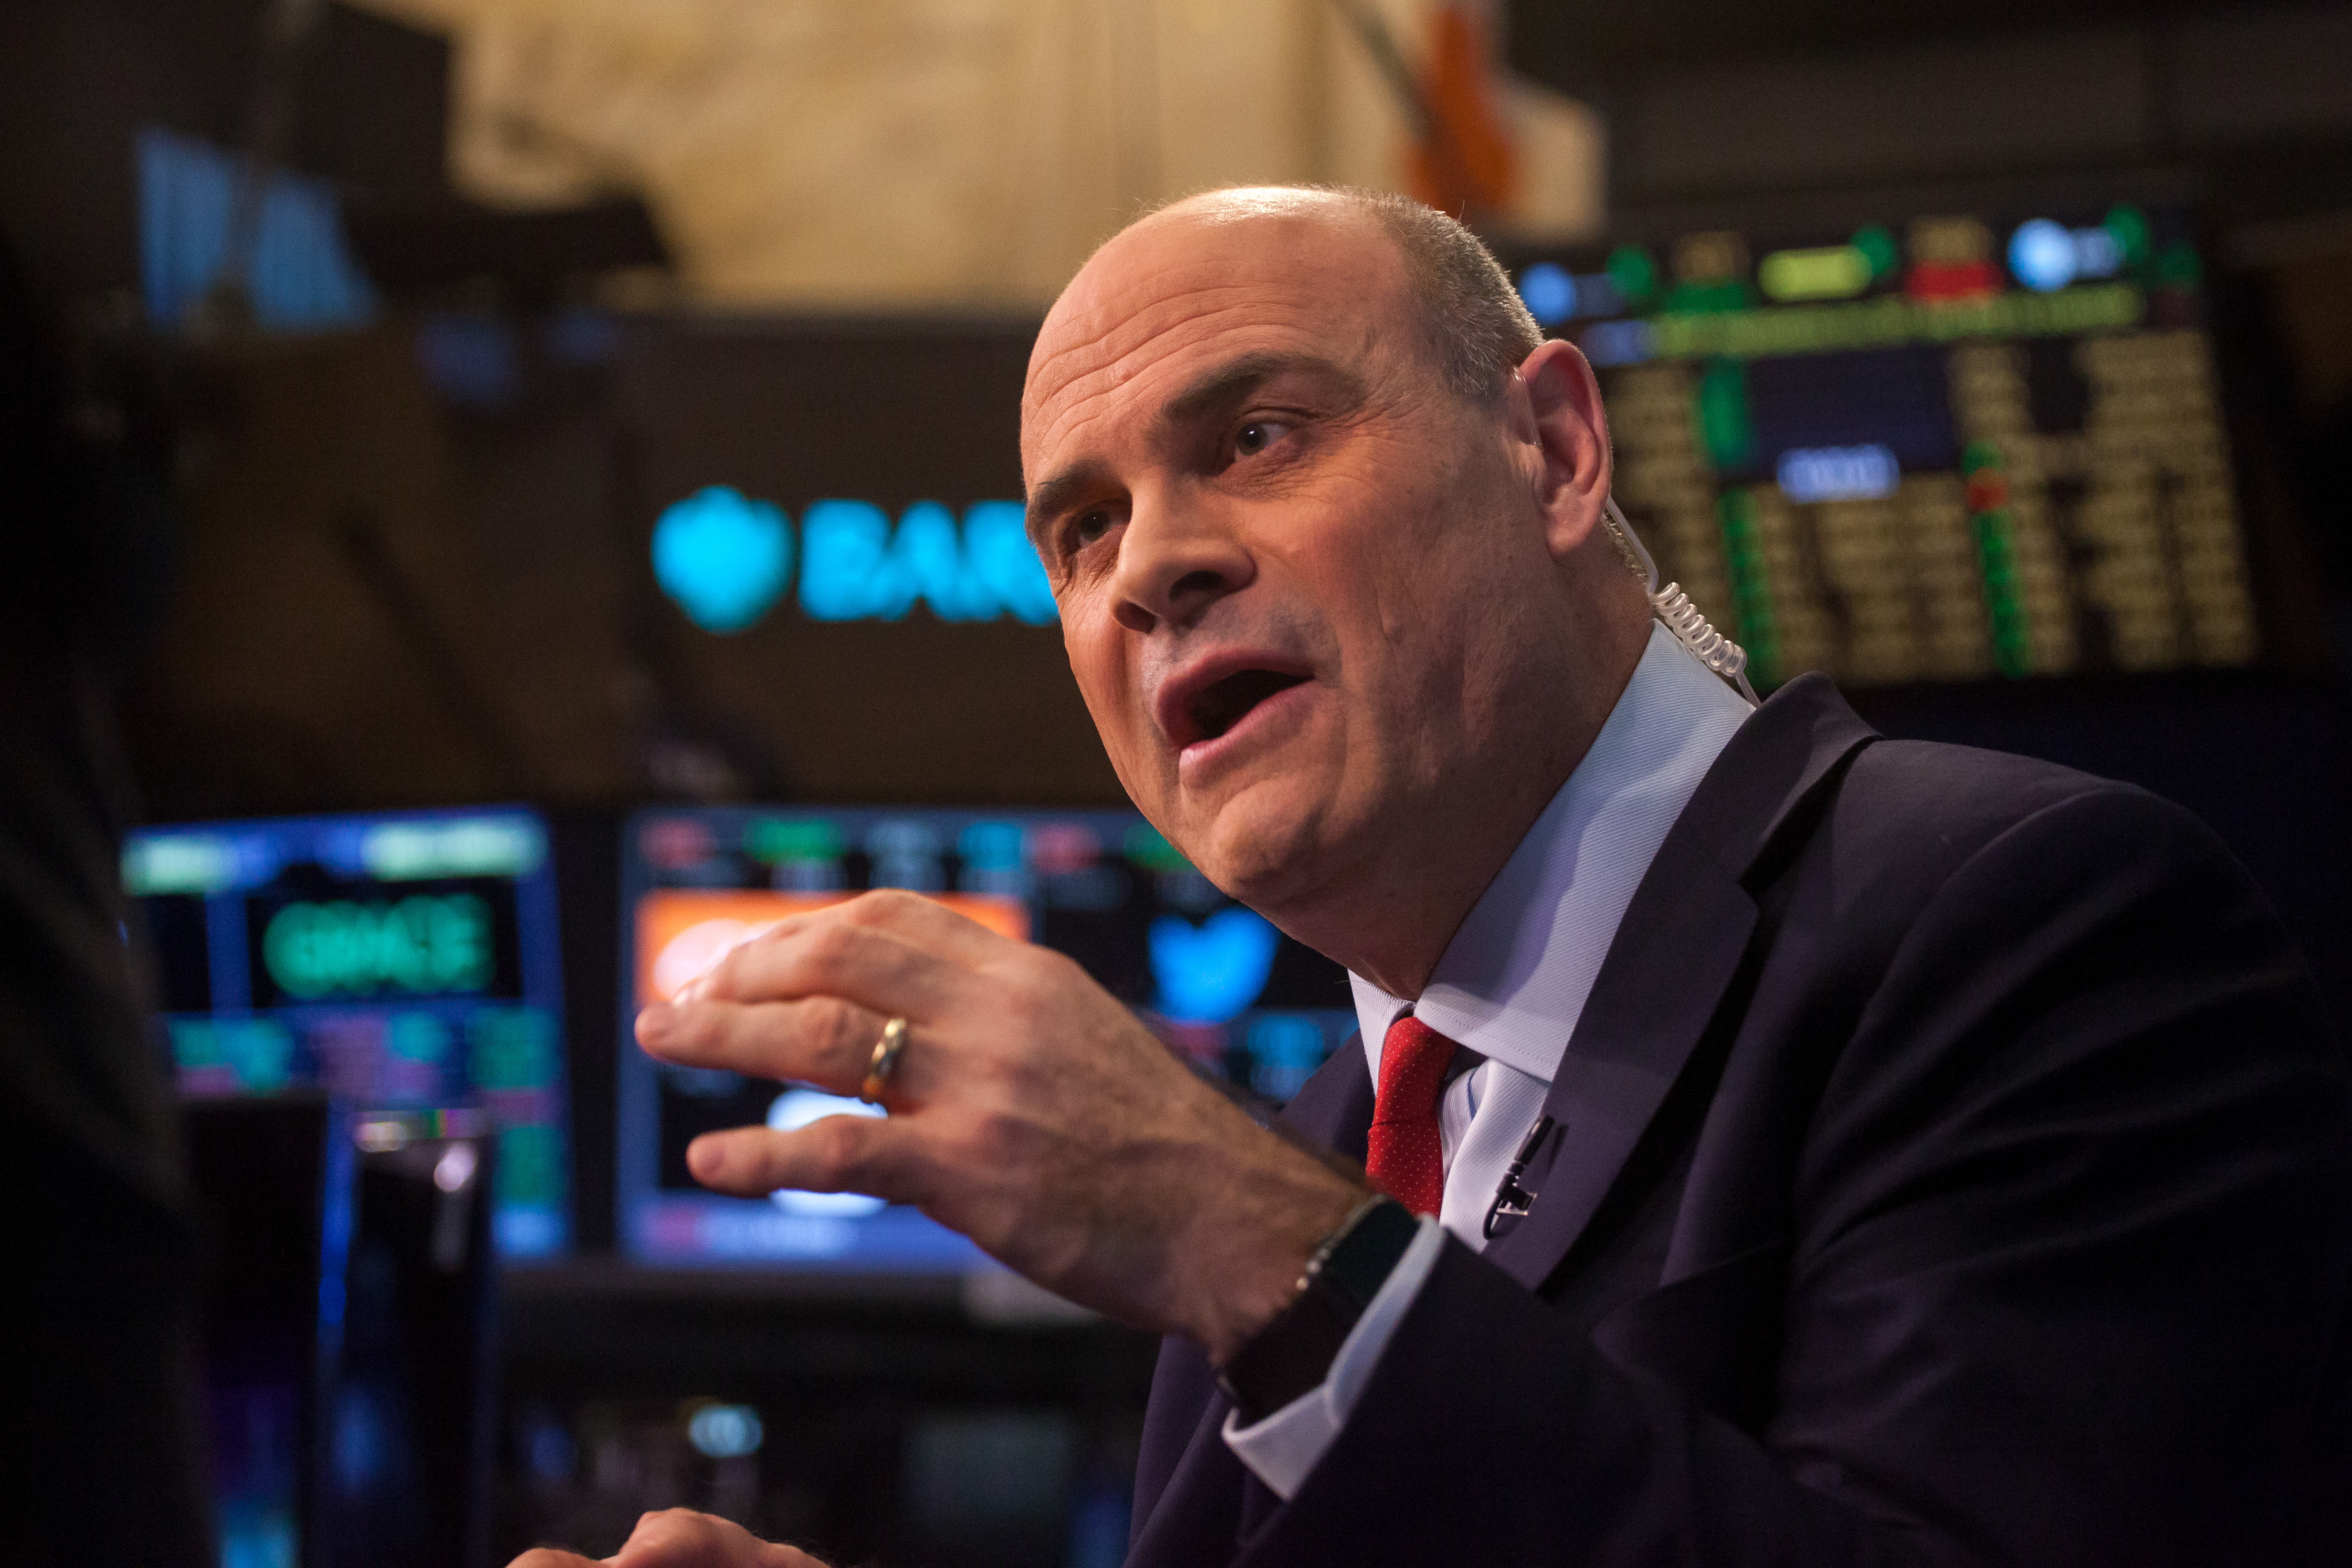 AIG Chief Executive Officer Peter Hancock Interview At The NYSE